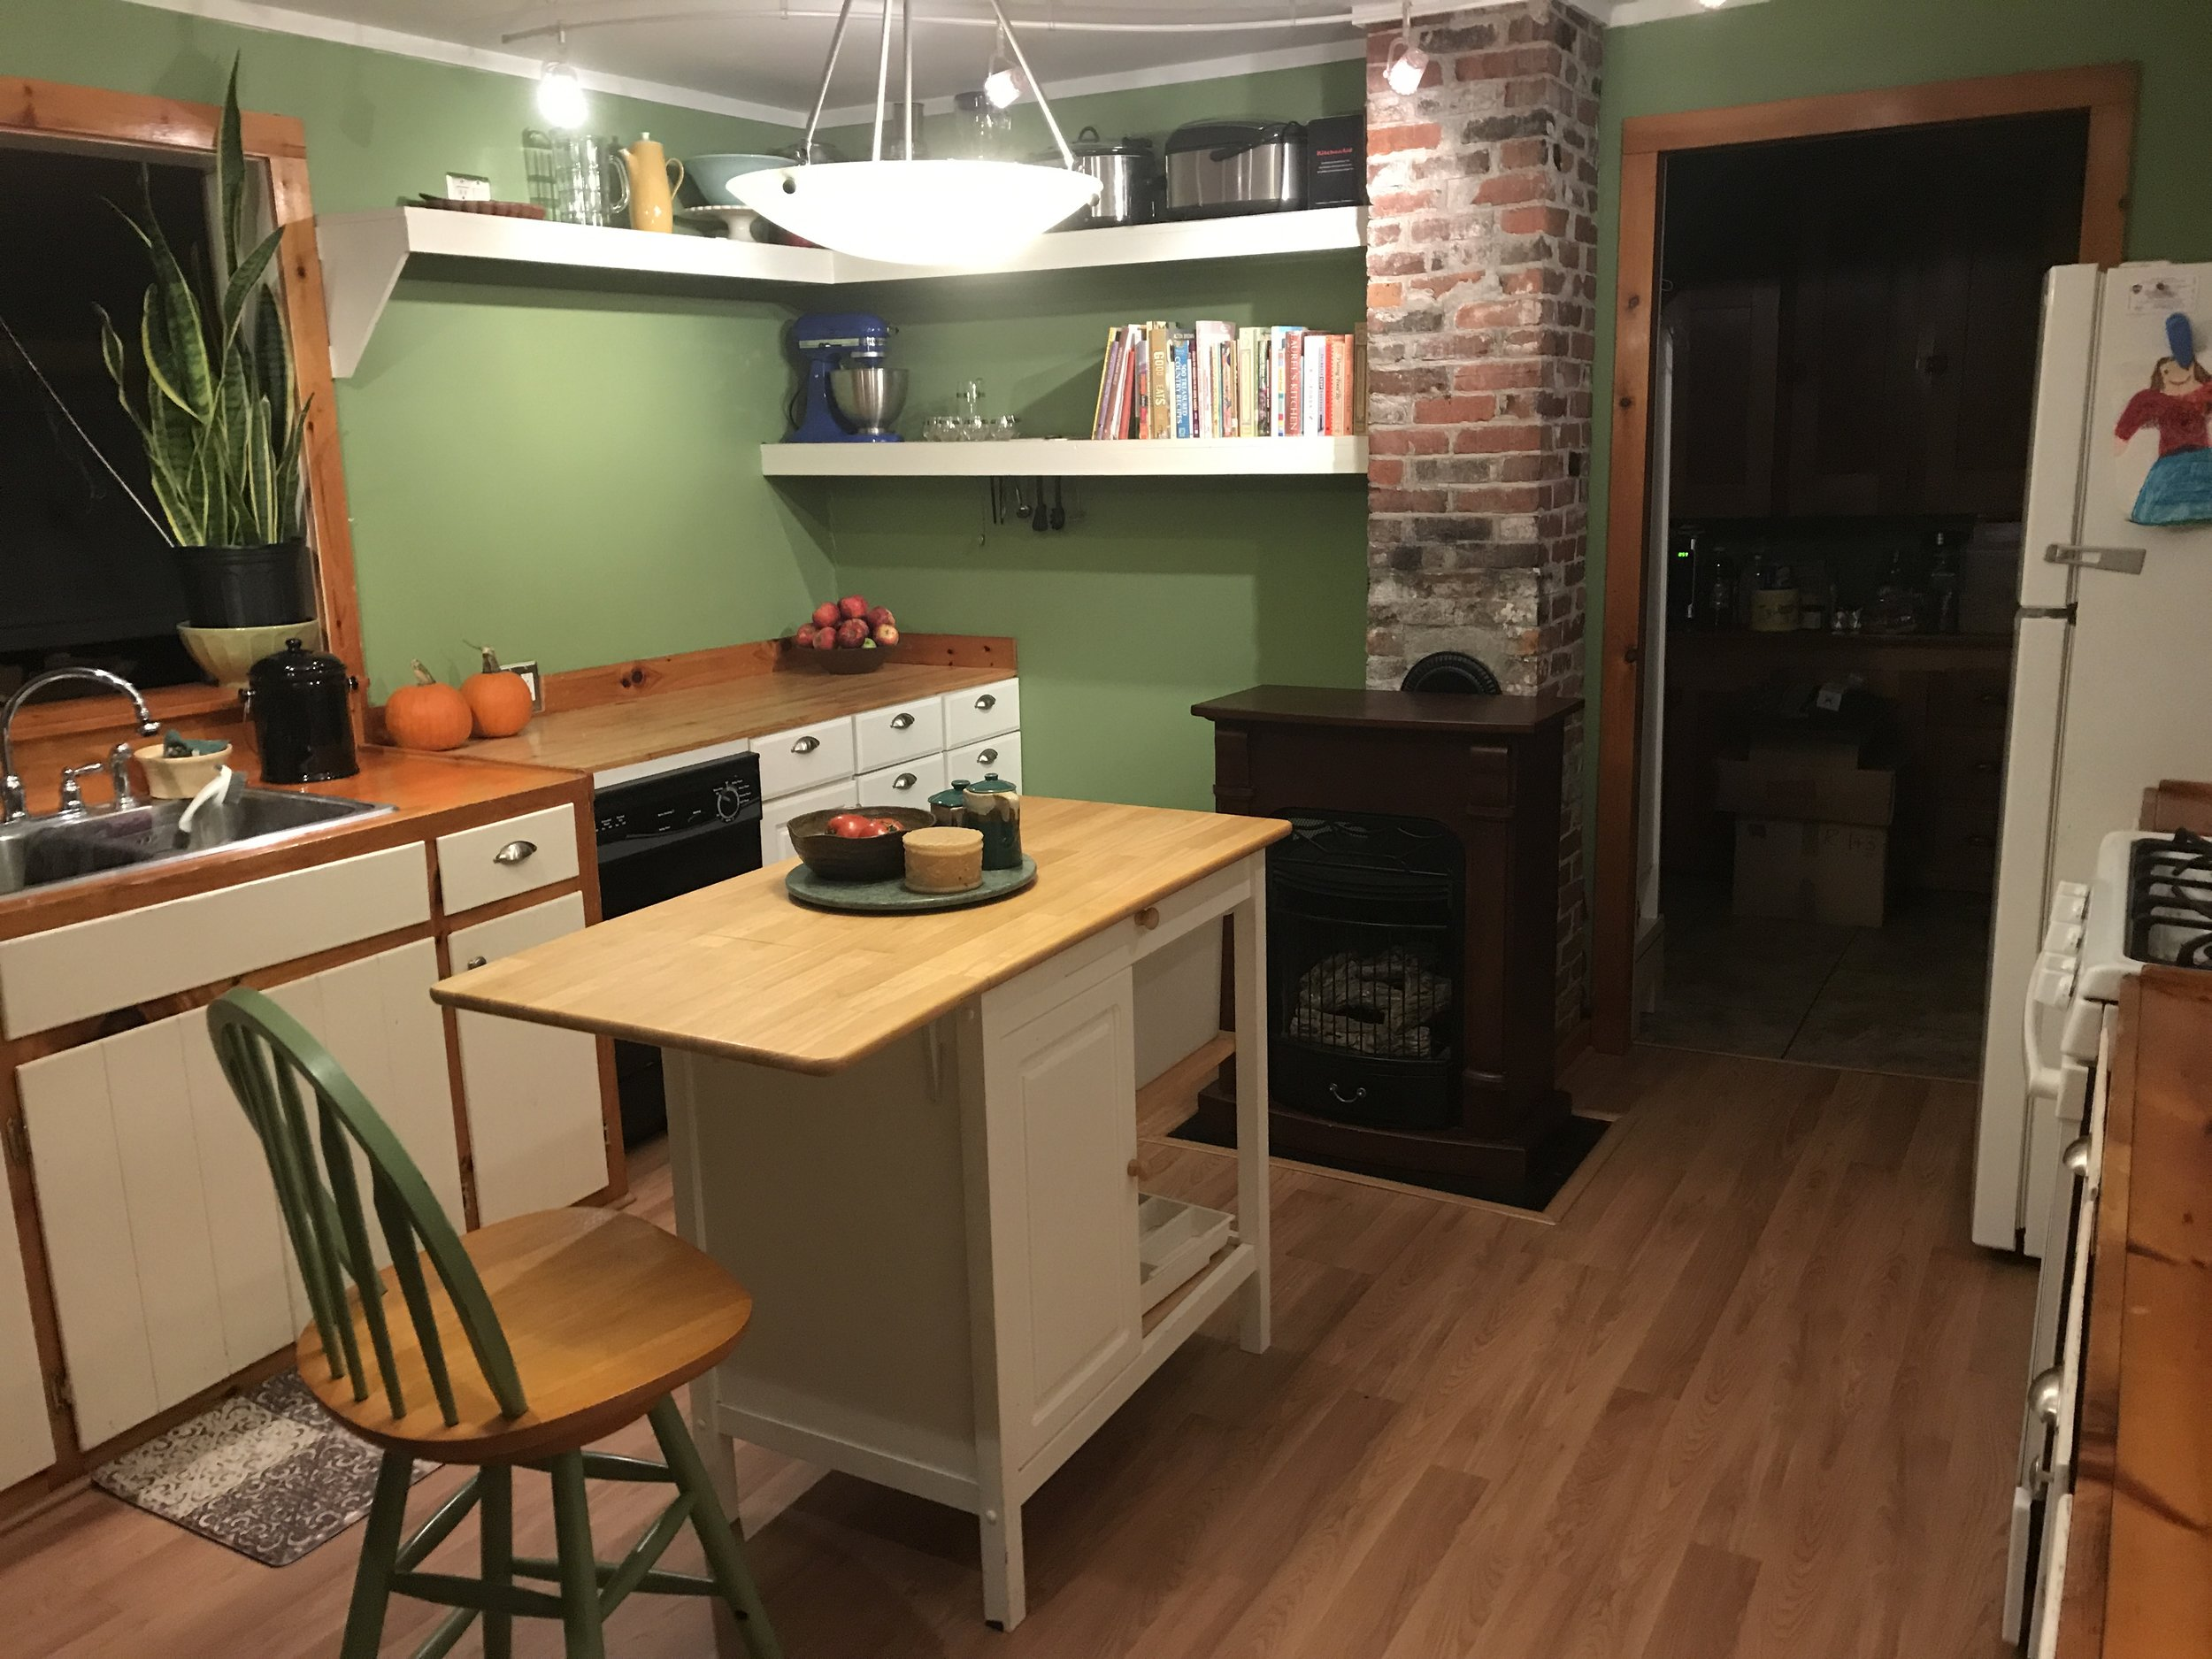 Kitchen organized after a move.